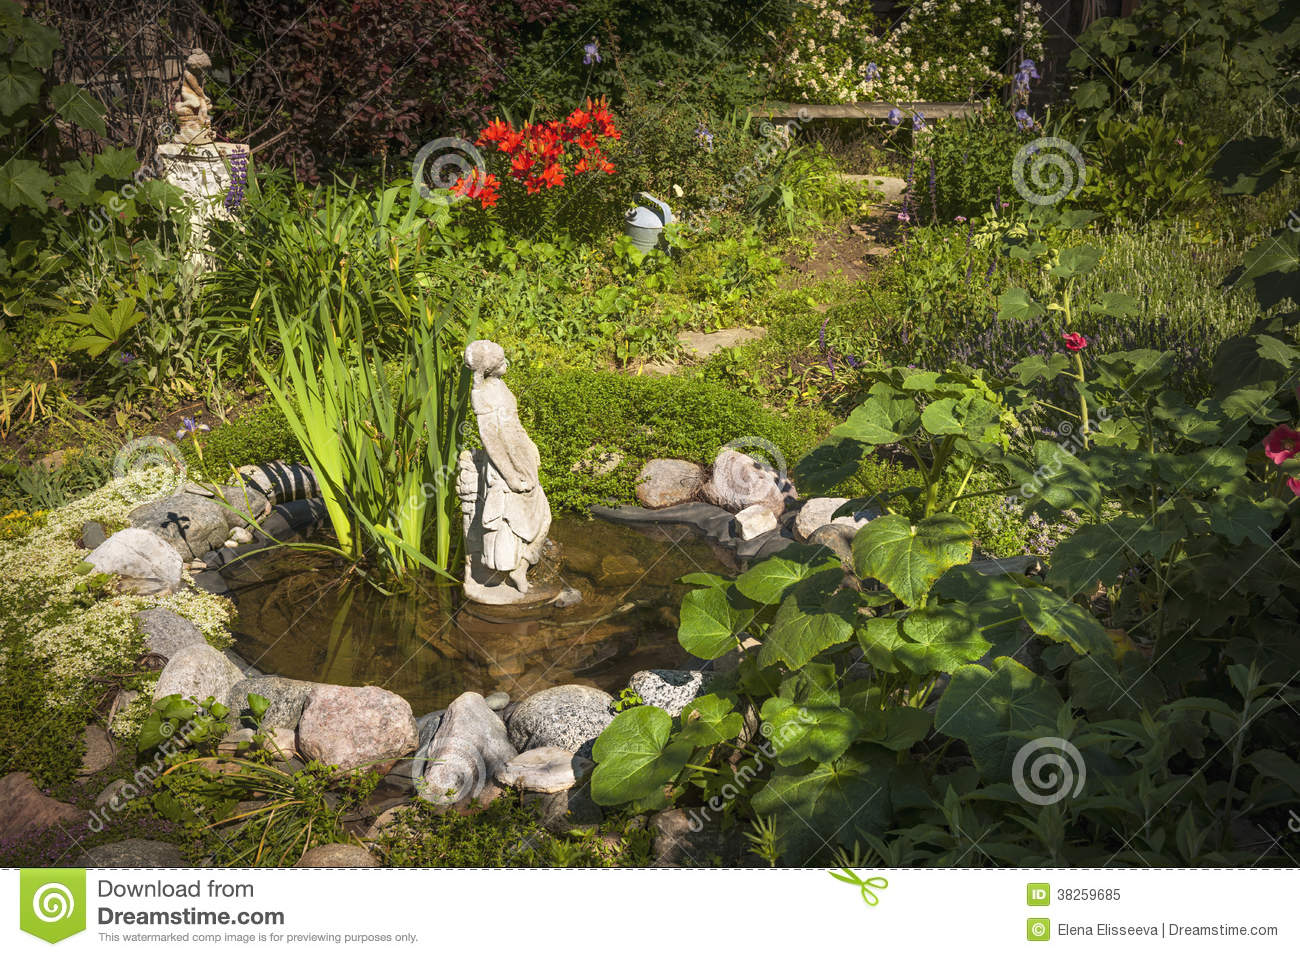 Stsatuette For Outdoor Ponds: Garden Pond With Statue Stock Image. Image Of Garden